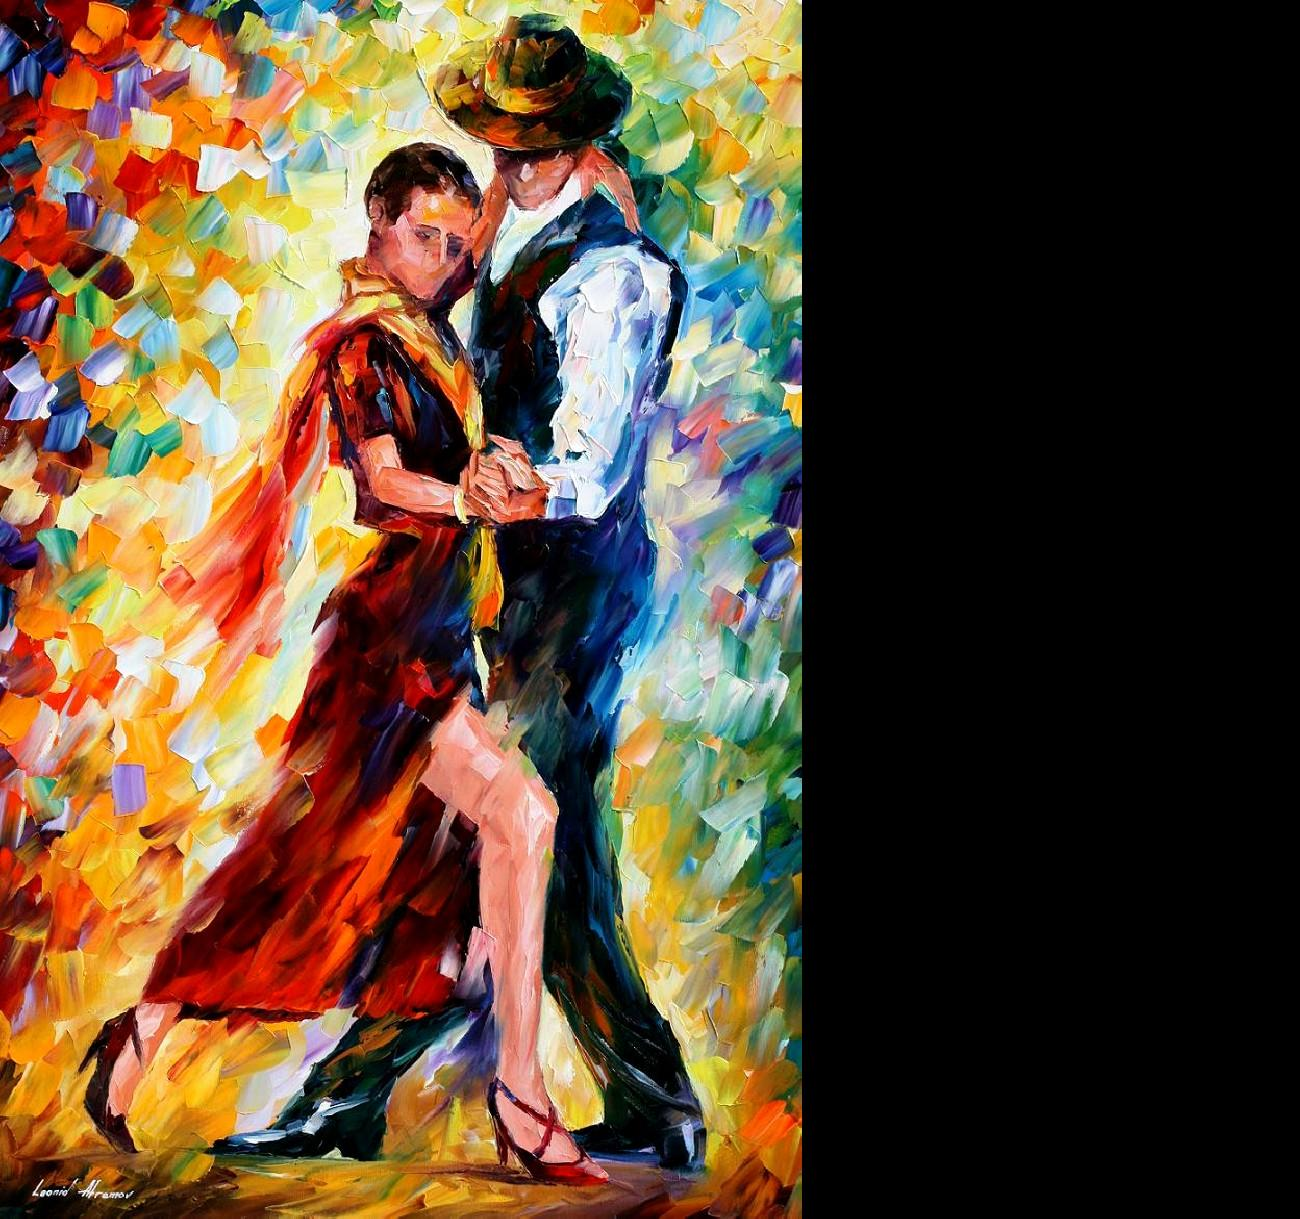 Leonid Afremov   Romantic Tango for Ton wallpaper   ForWallpaper 1300x1219